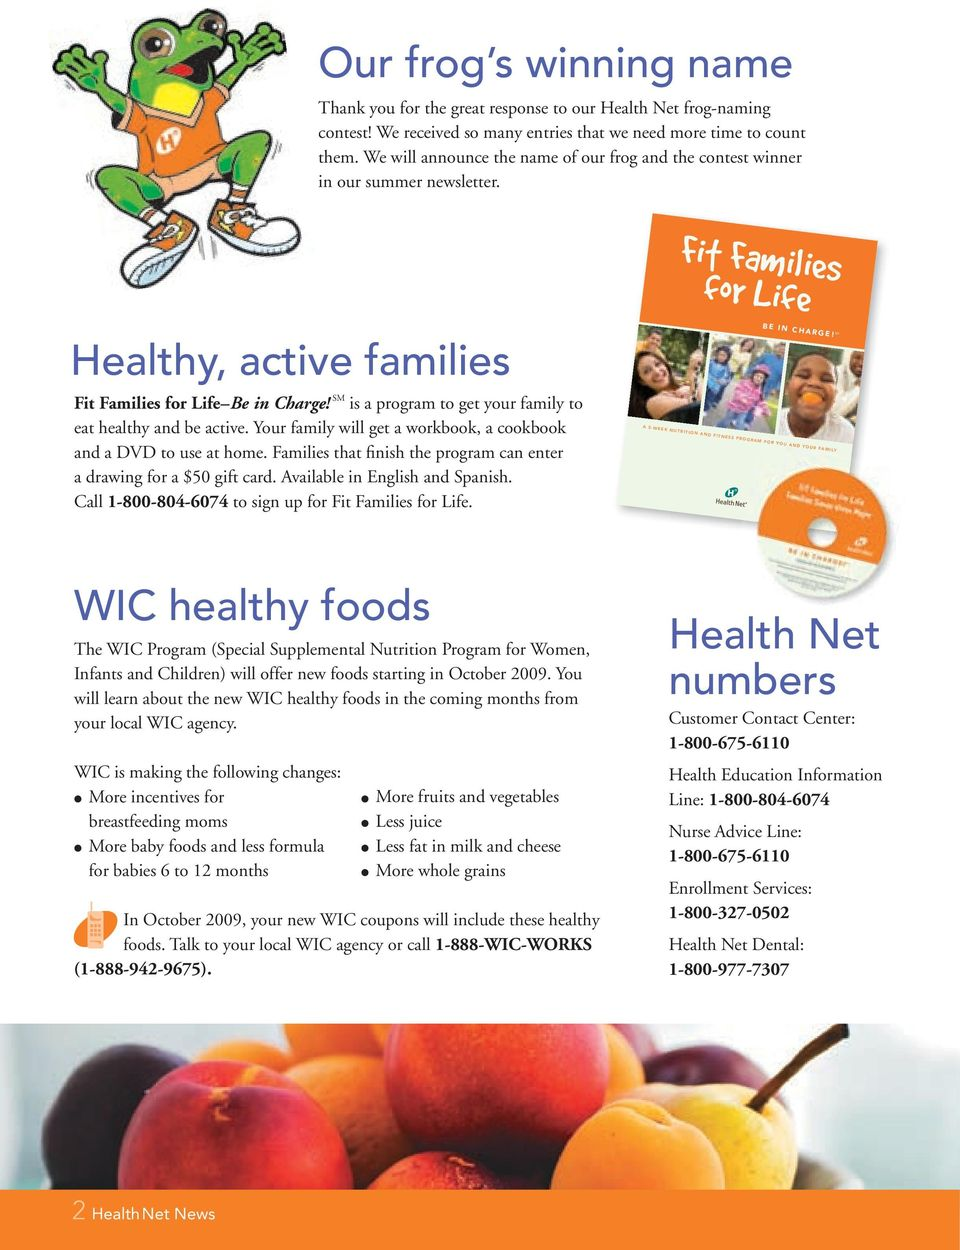 SM is a program to get your family to eat healthy and be active. Your family will get a workbook, a cookbook and a DVD to use at home.